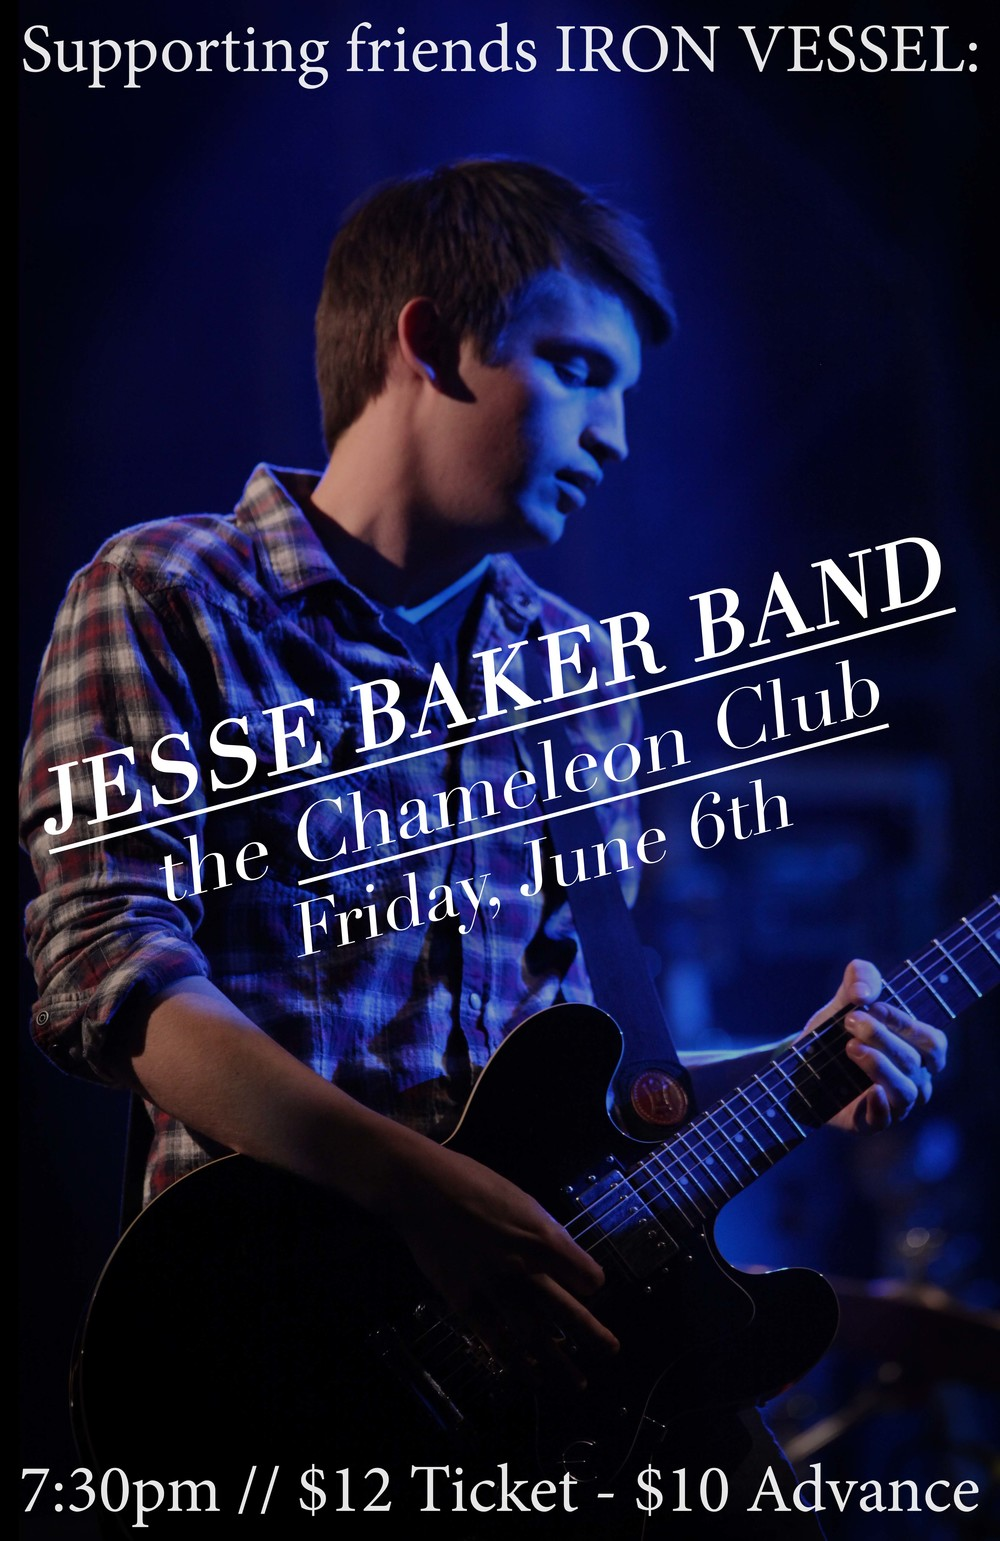 Flier for Jesse Baker Band at the Chameleon Club on Friday, June 6th.